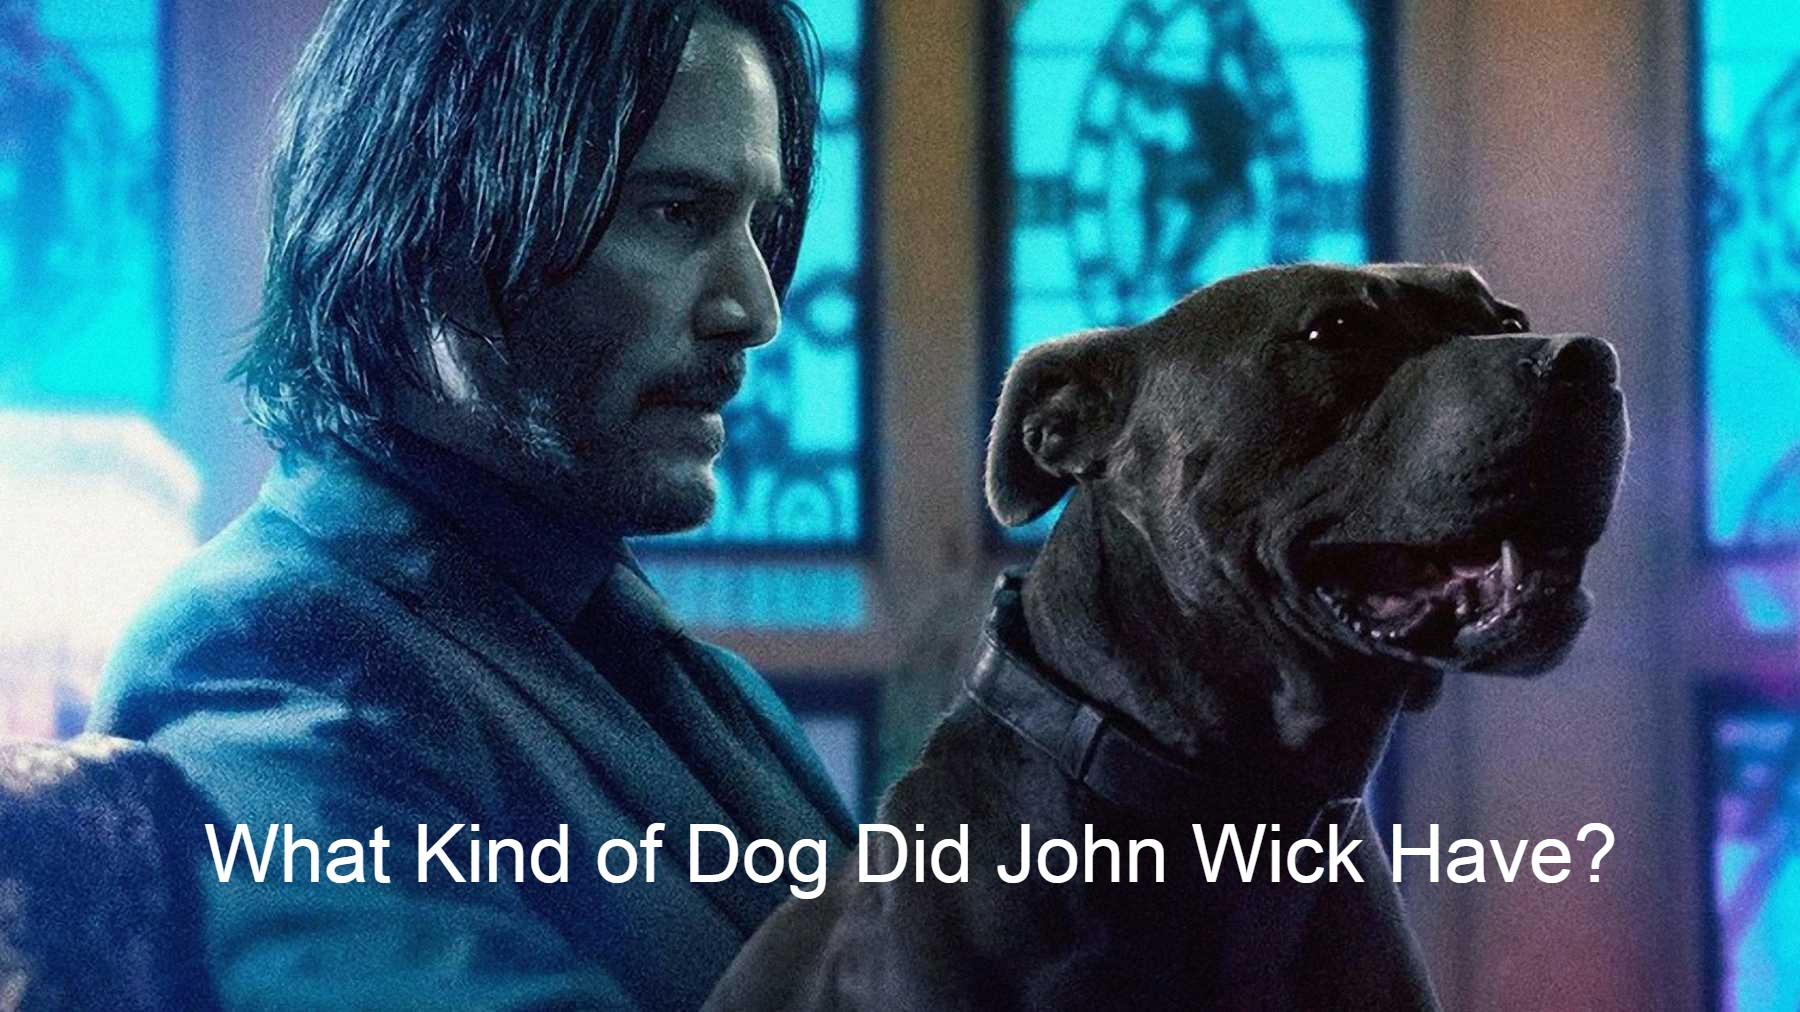 What Kind of Dog Did John Wick Have?